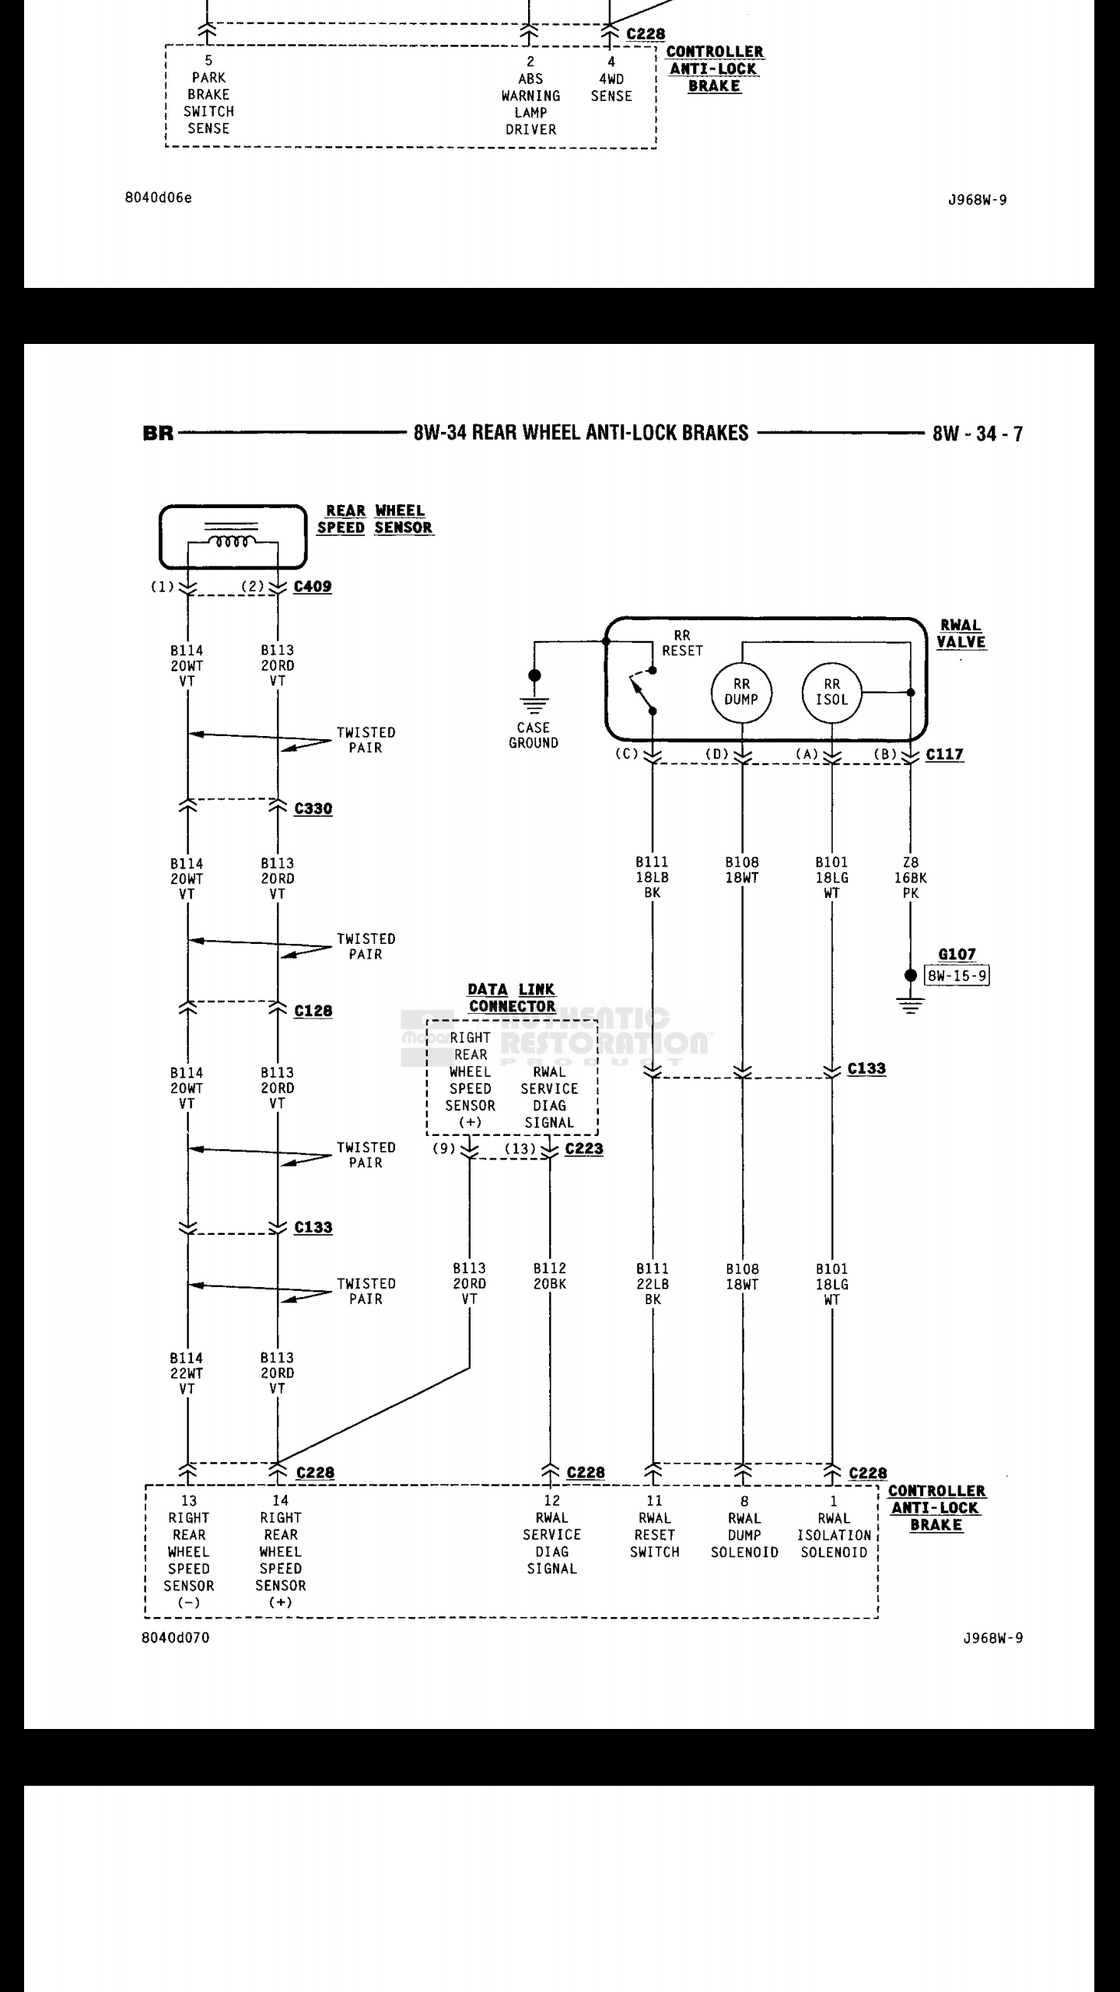 What Is The Abs Supply Voltage To Rwal Sensor On 99 Ram